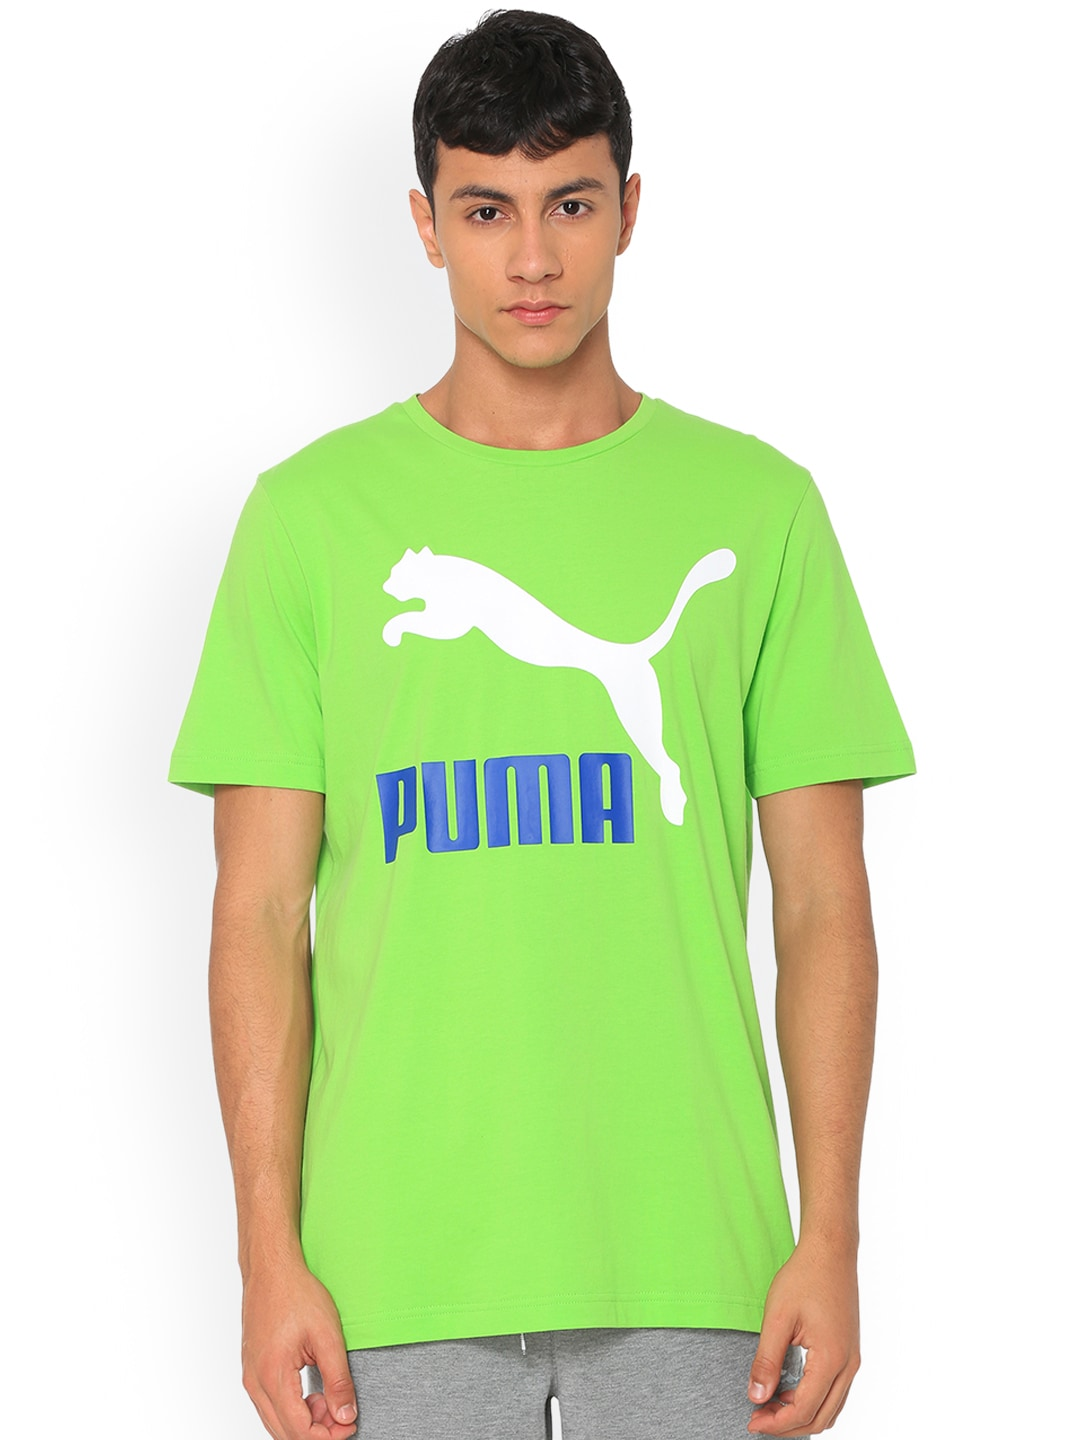 c23f89a139c Puma T shirts - Buy Puma T Shirts For Men & Women Online in India